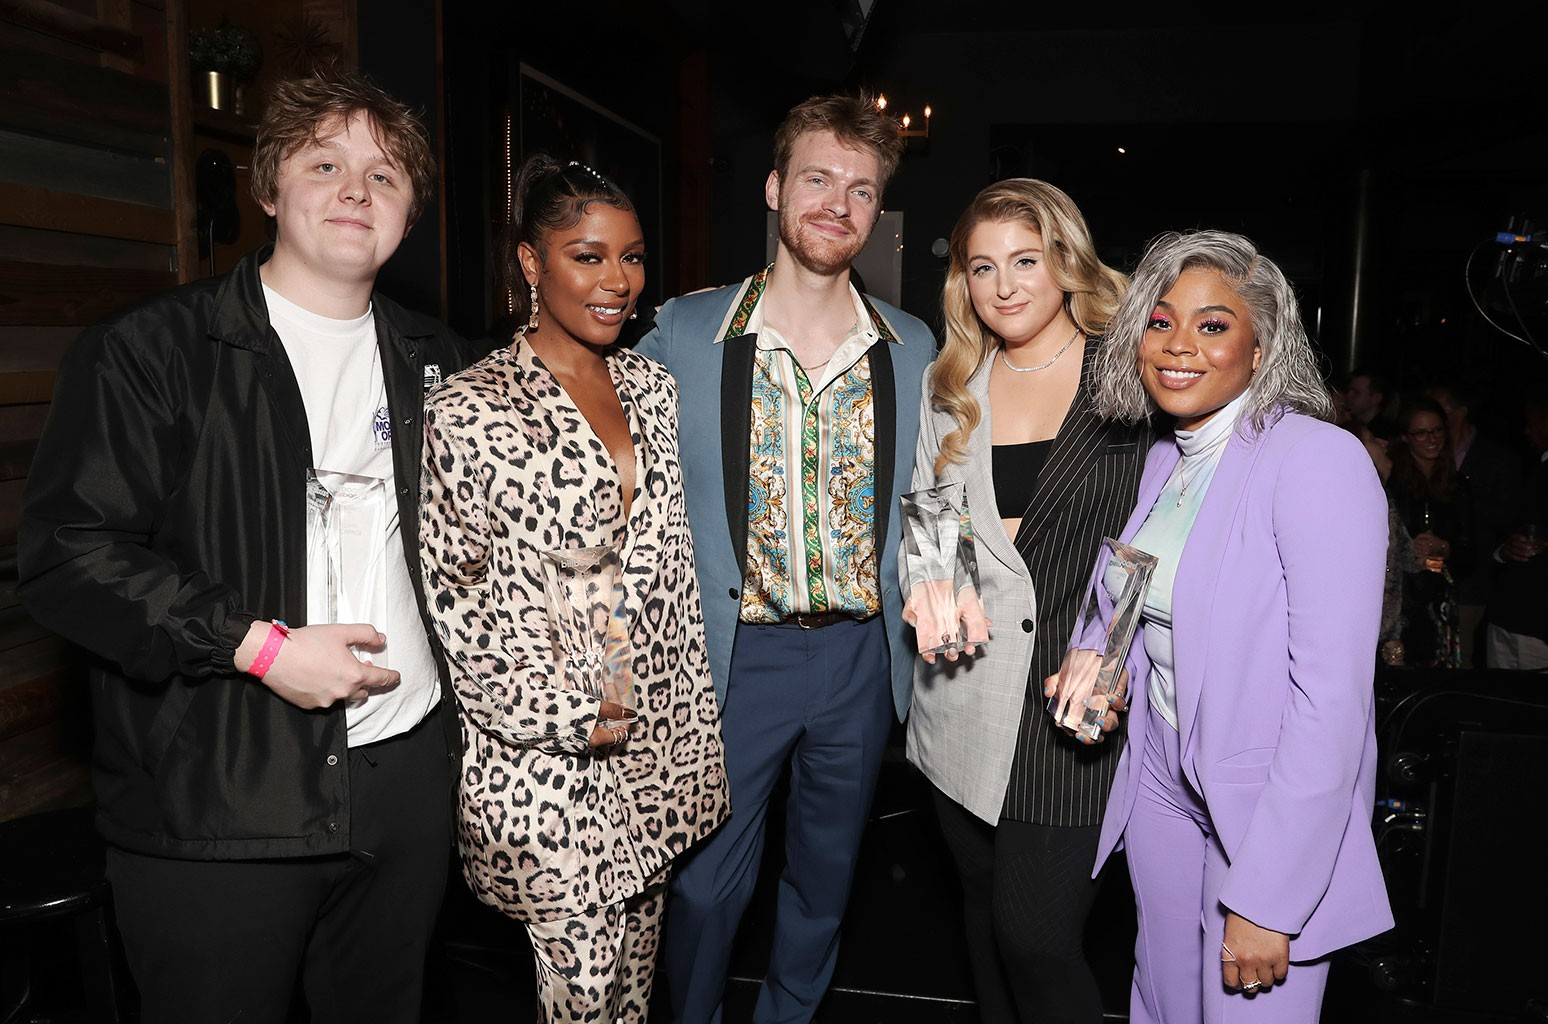 Lewis Capaldi, Victoria Monet, Finneas O'Connell, Meghan Trainor and Tayla Parx attend the NMPA + Billboard Grammy Week Songwriter Showcase.